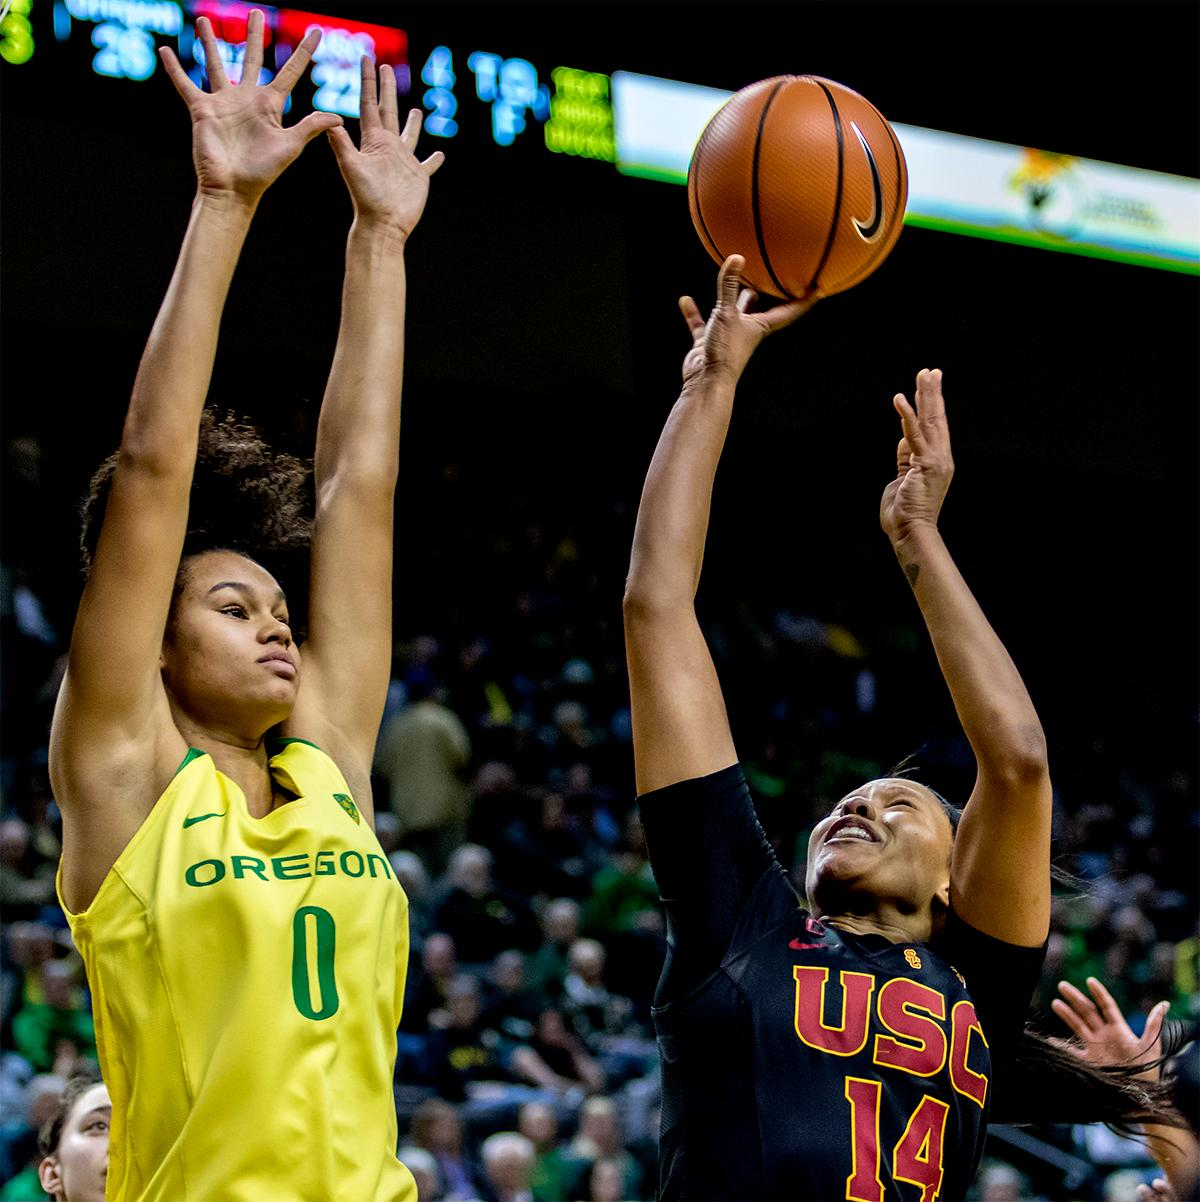 The Trojan's Sadie Edwards (#14) shoots for the basket as the Duck's Satou Sabally (#0) defends. The Oregon Ducks defeated the USC Trojans 80-74 on Friday at Matthew Knight Arena in a  game that went into double overtime. Lexi Bando sealed the Ducks victory by scoring a three-pointer in the closing of the game. Ruthy Hebard set a new NCAA record of 30 consecutive field goals, the old record being 28. Ruthy Hebard got a double-double with 27 points and 10 rebounds, Mallory McGwire also had 10 rebounds. The ducks had four players in double digits. The Ducks are now 24-4, 13-2 in the Pac-12, and are tied for first with Stanford. Photo by August Frank, Oregon News Lab